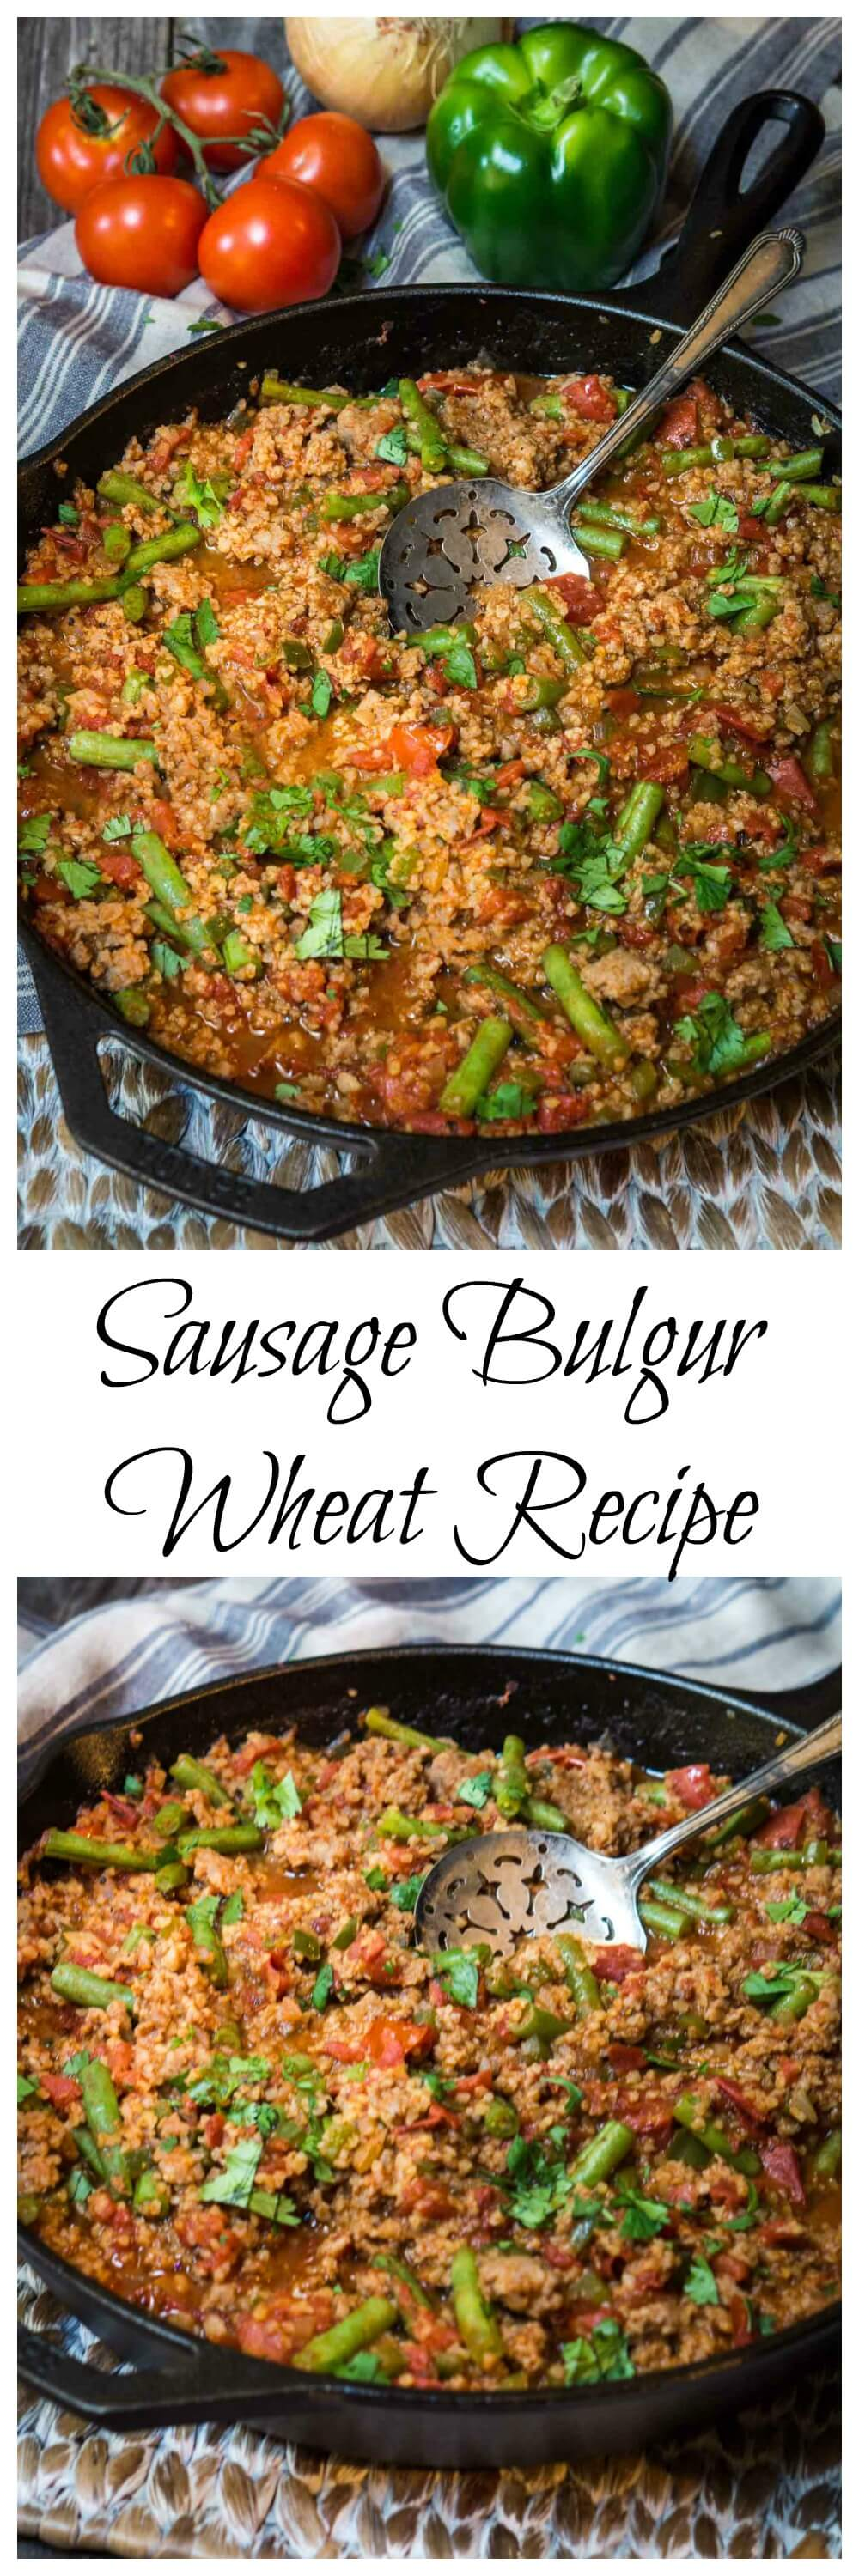 Bulgur Wheat has a warm nutty flavor. It can be cooked right into your recipe in 20 minutes which makes it perfect for this One-pan Sausage Bulgur Wheat Recipe any night of the week. #bulgur #WholeGrain #cookinglight, #healthyrecipes #healthy #healthyfood